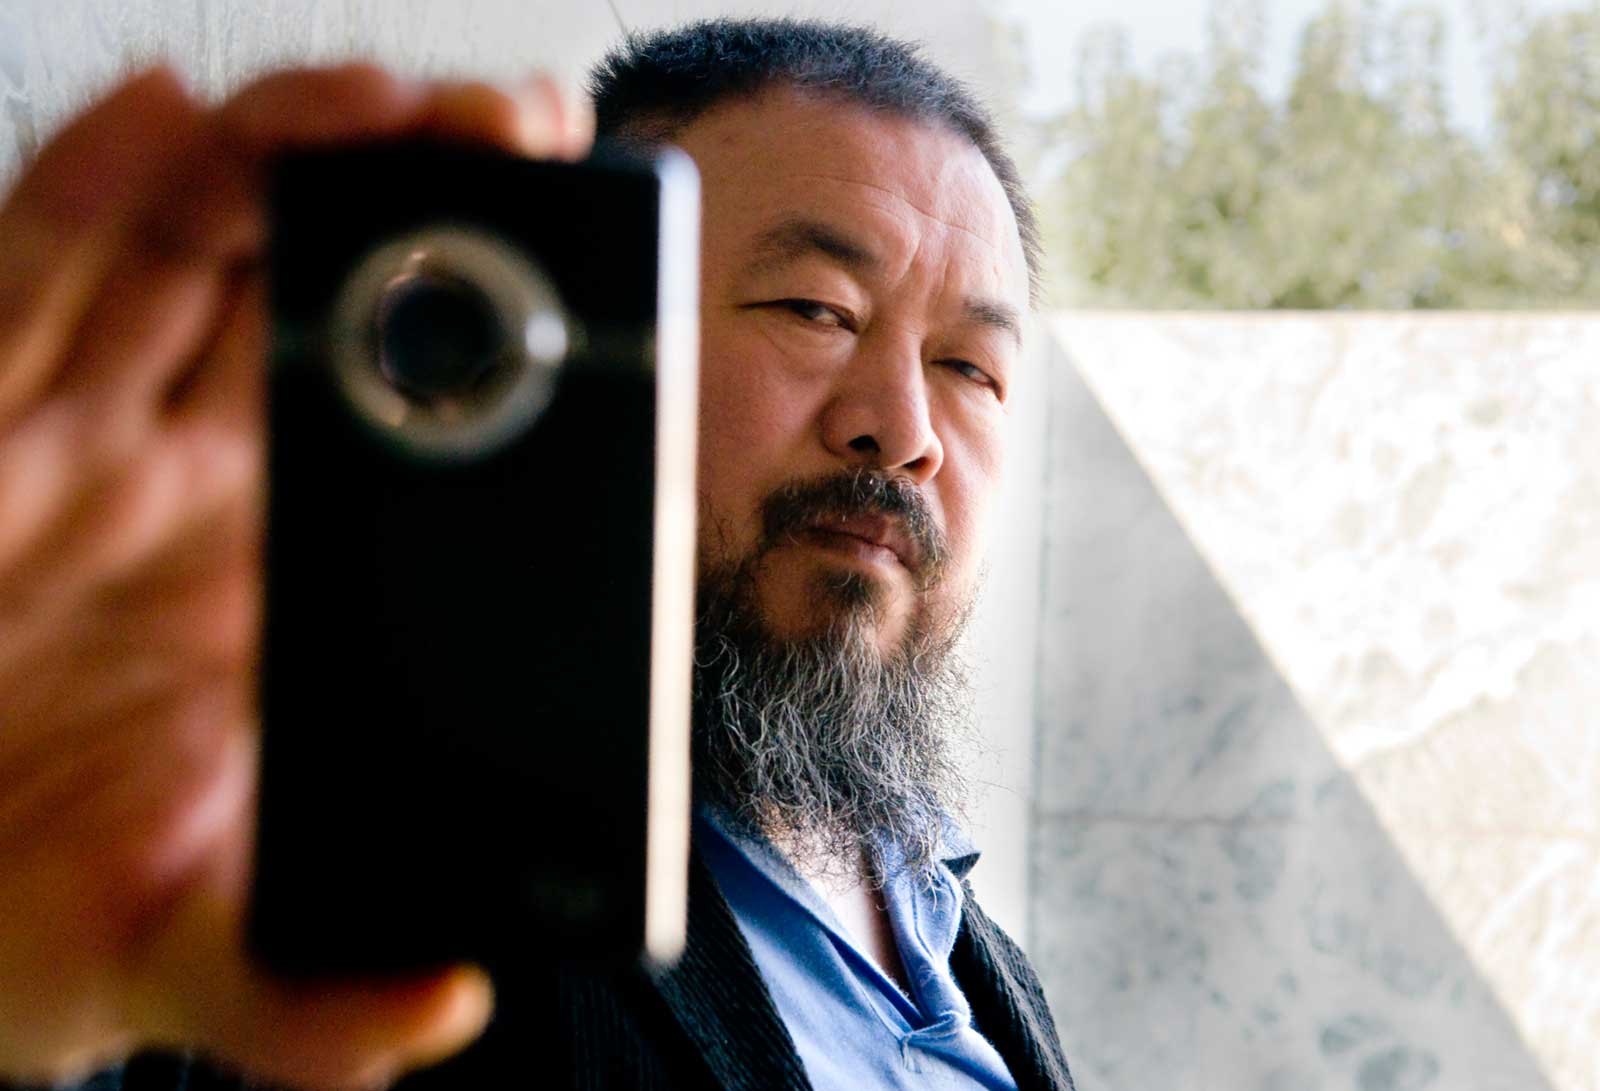 AIWEIWEI _ WITH MILK  - desembre 2009 - Pavelló Mies van der Rohe - Barcelona7